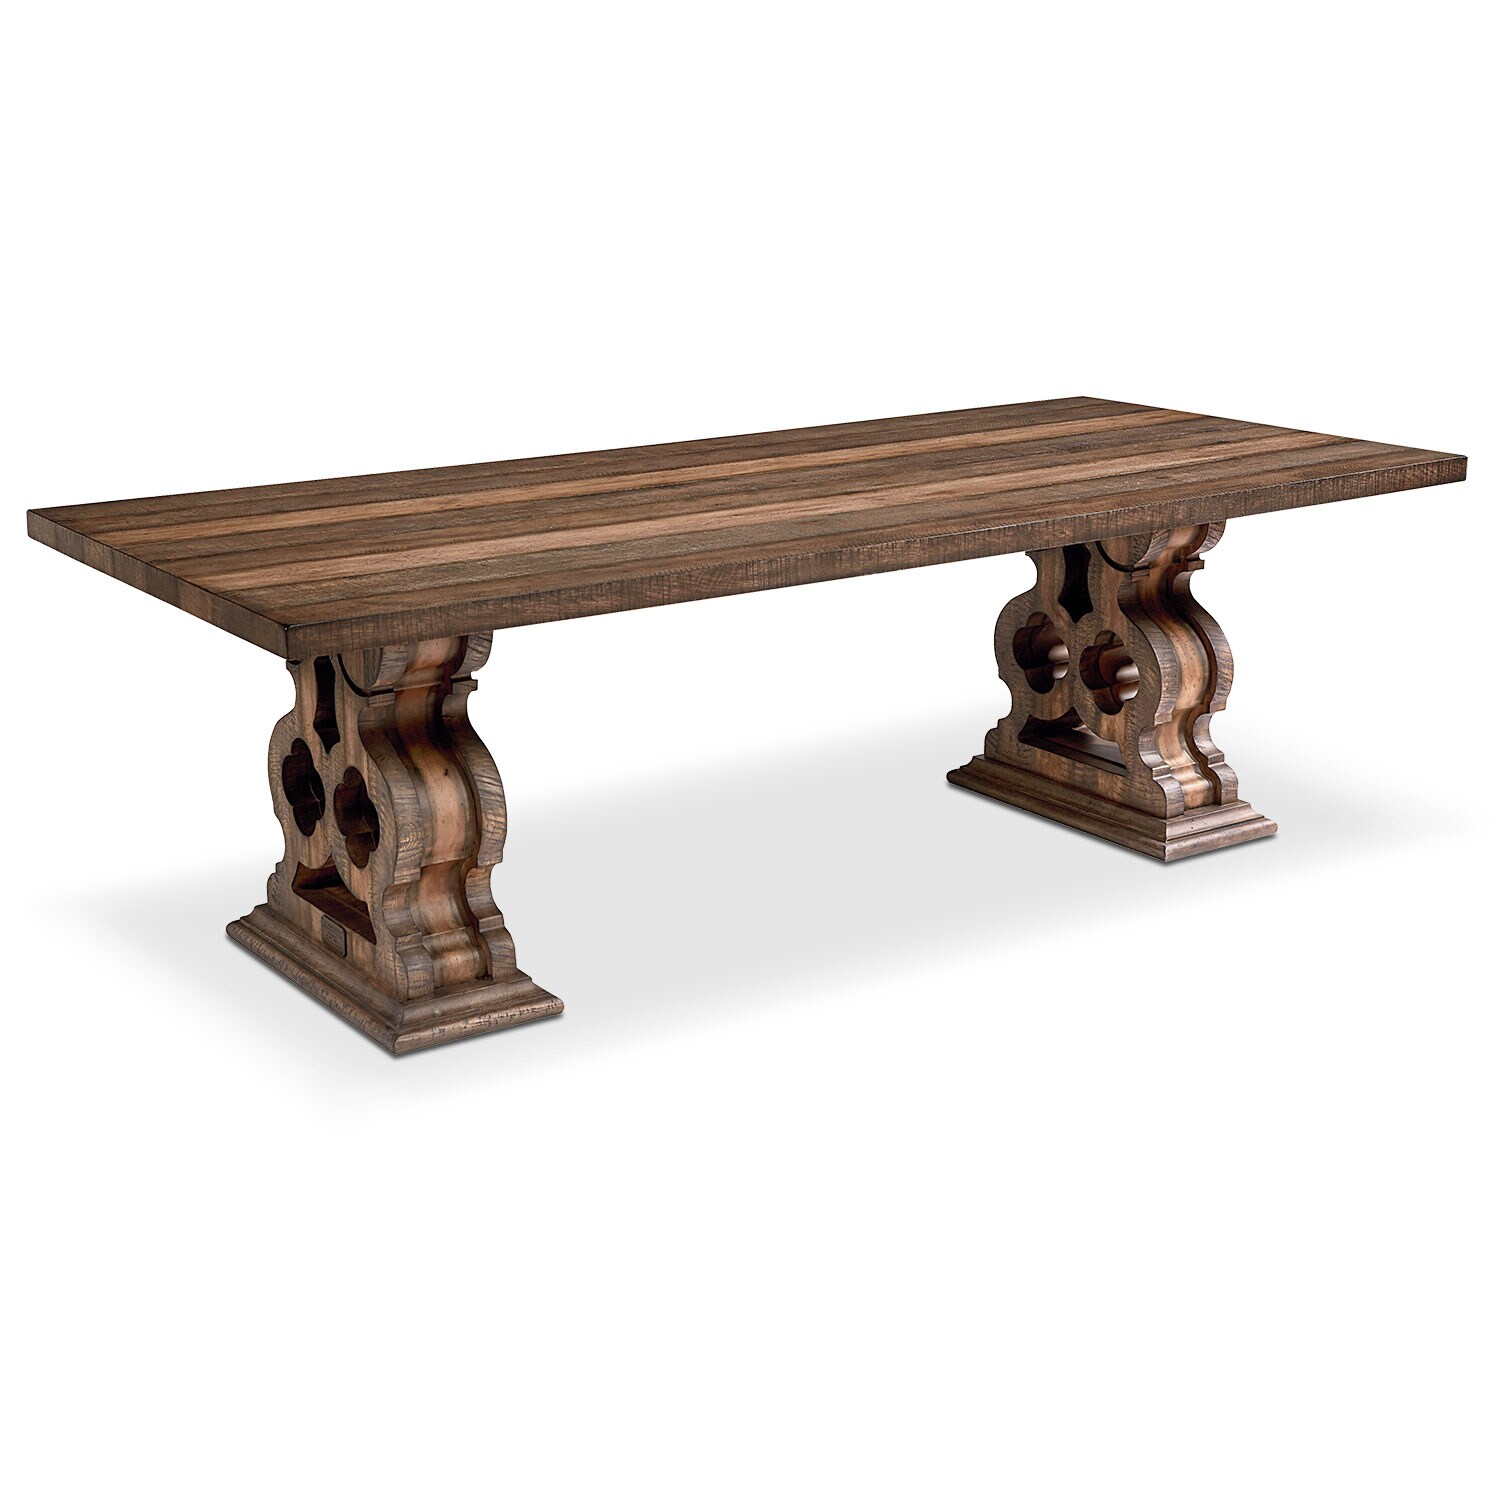 Dining Room Furniture - Double Pedestal Dining Table - Shop Floor